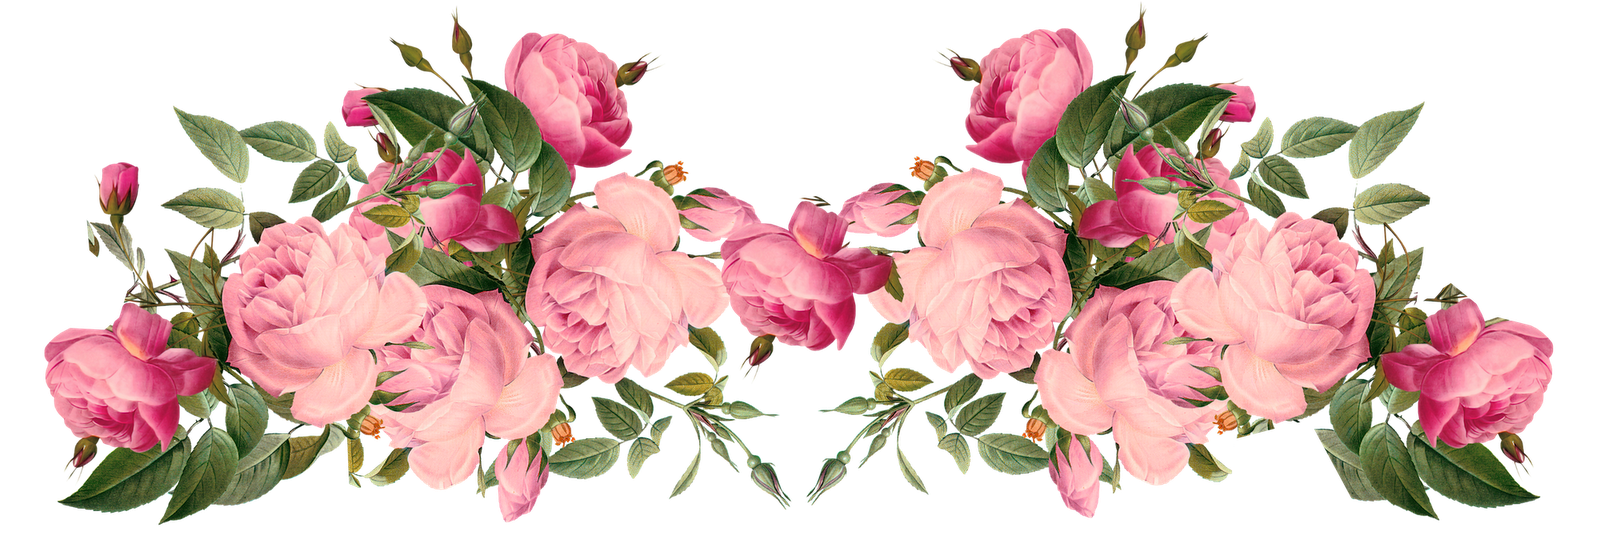 Free flowers photos clip art black and white Image - Flowers-borders-png-pink-rose-borders-free-pink-roses-border ... clip art black and white